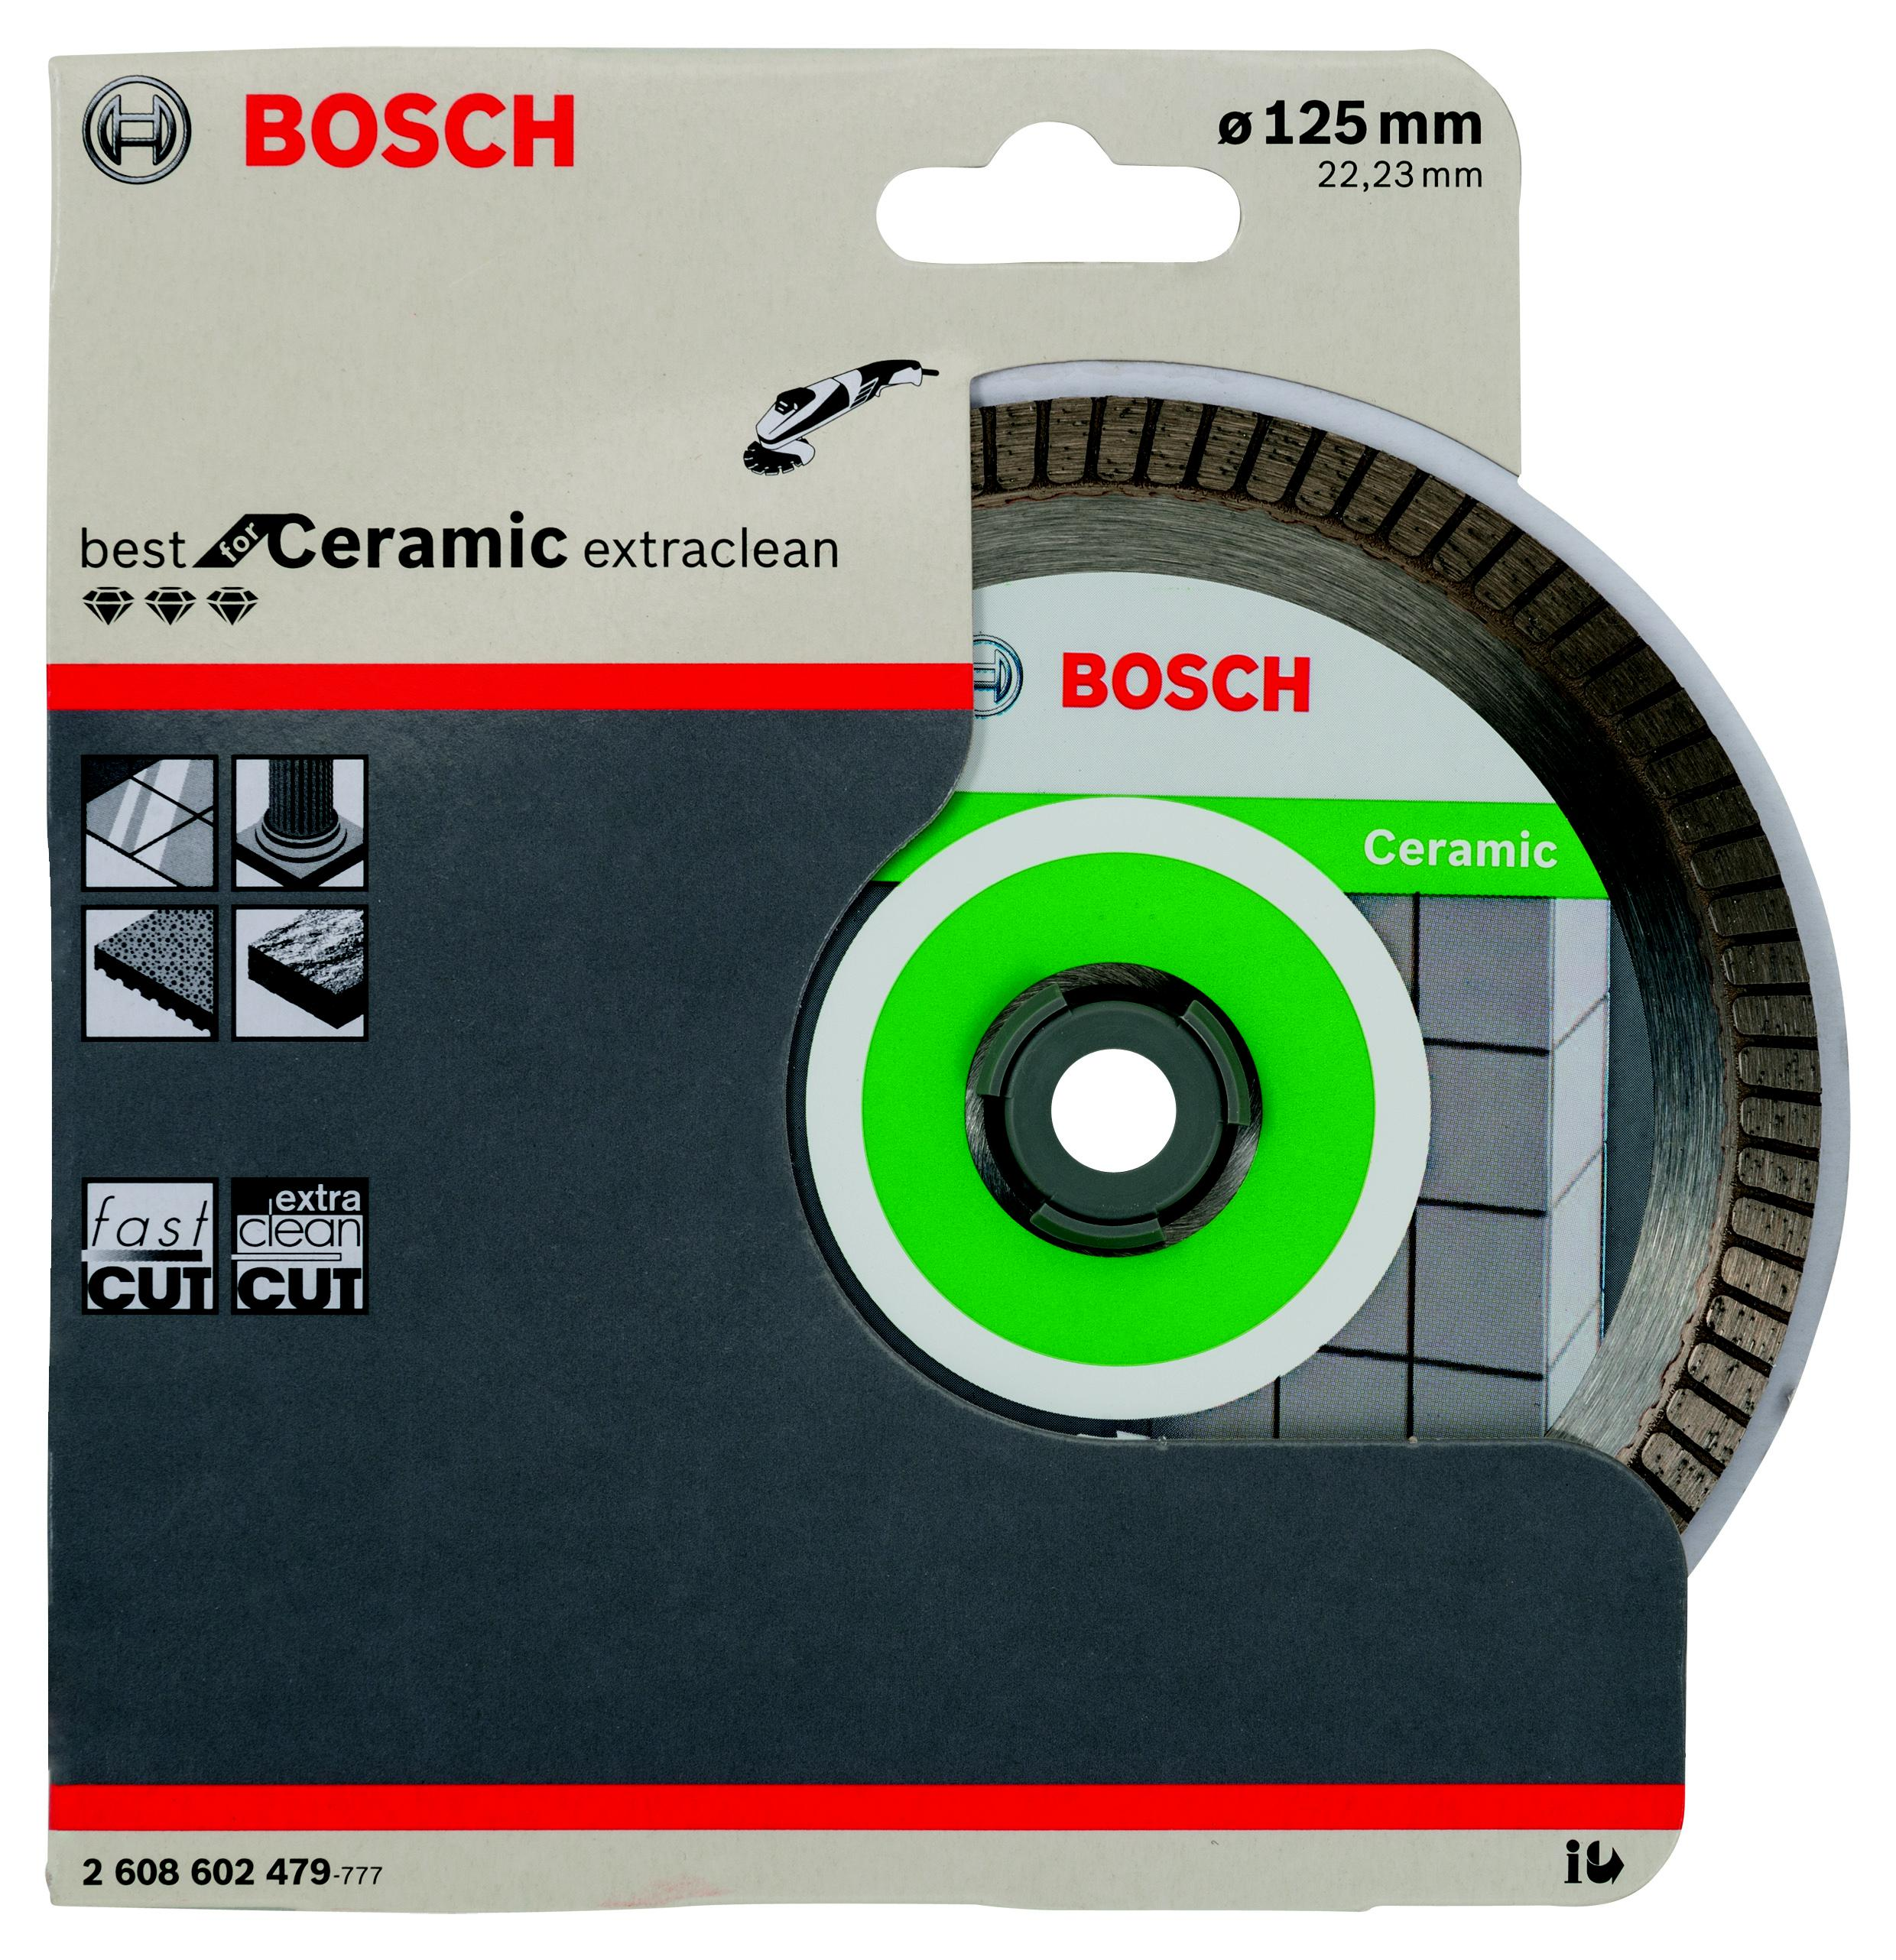 Круг алмазный Bosch Best for ceramic extraclean turbo 125x22 турбо (2.608.602.479) диск отрезной алмазный турбо 125х22 2mm 20007 ottom 125x22 2mm